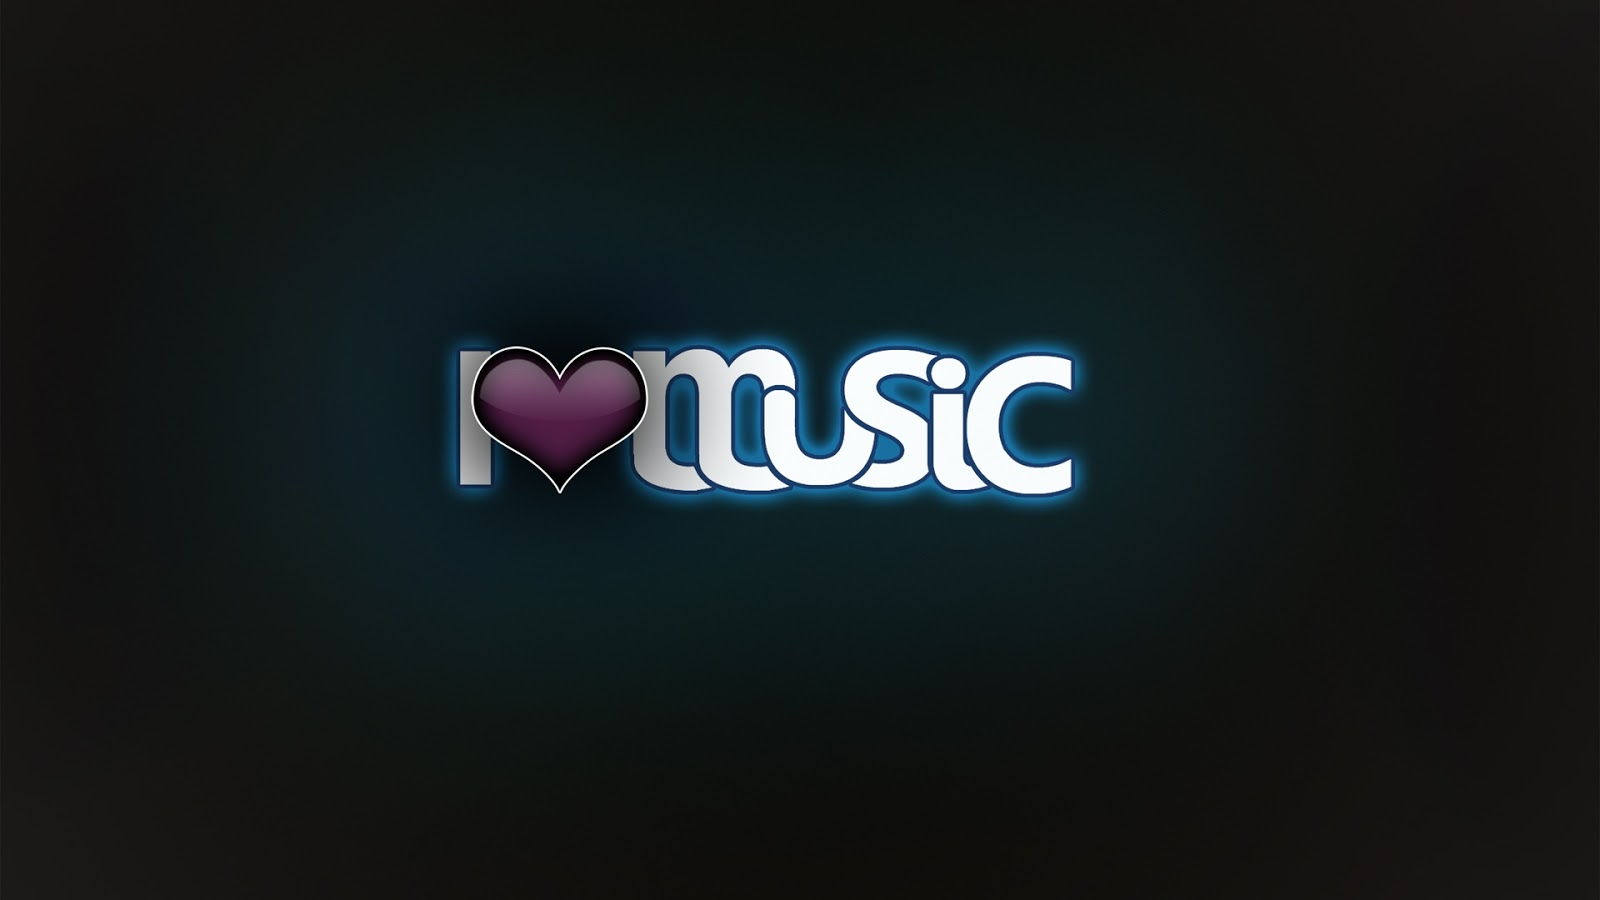 I love music fondos de pantalla im genes para for House music pop